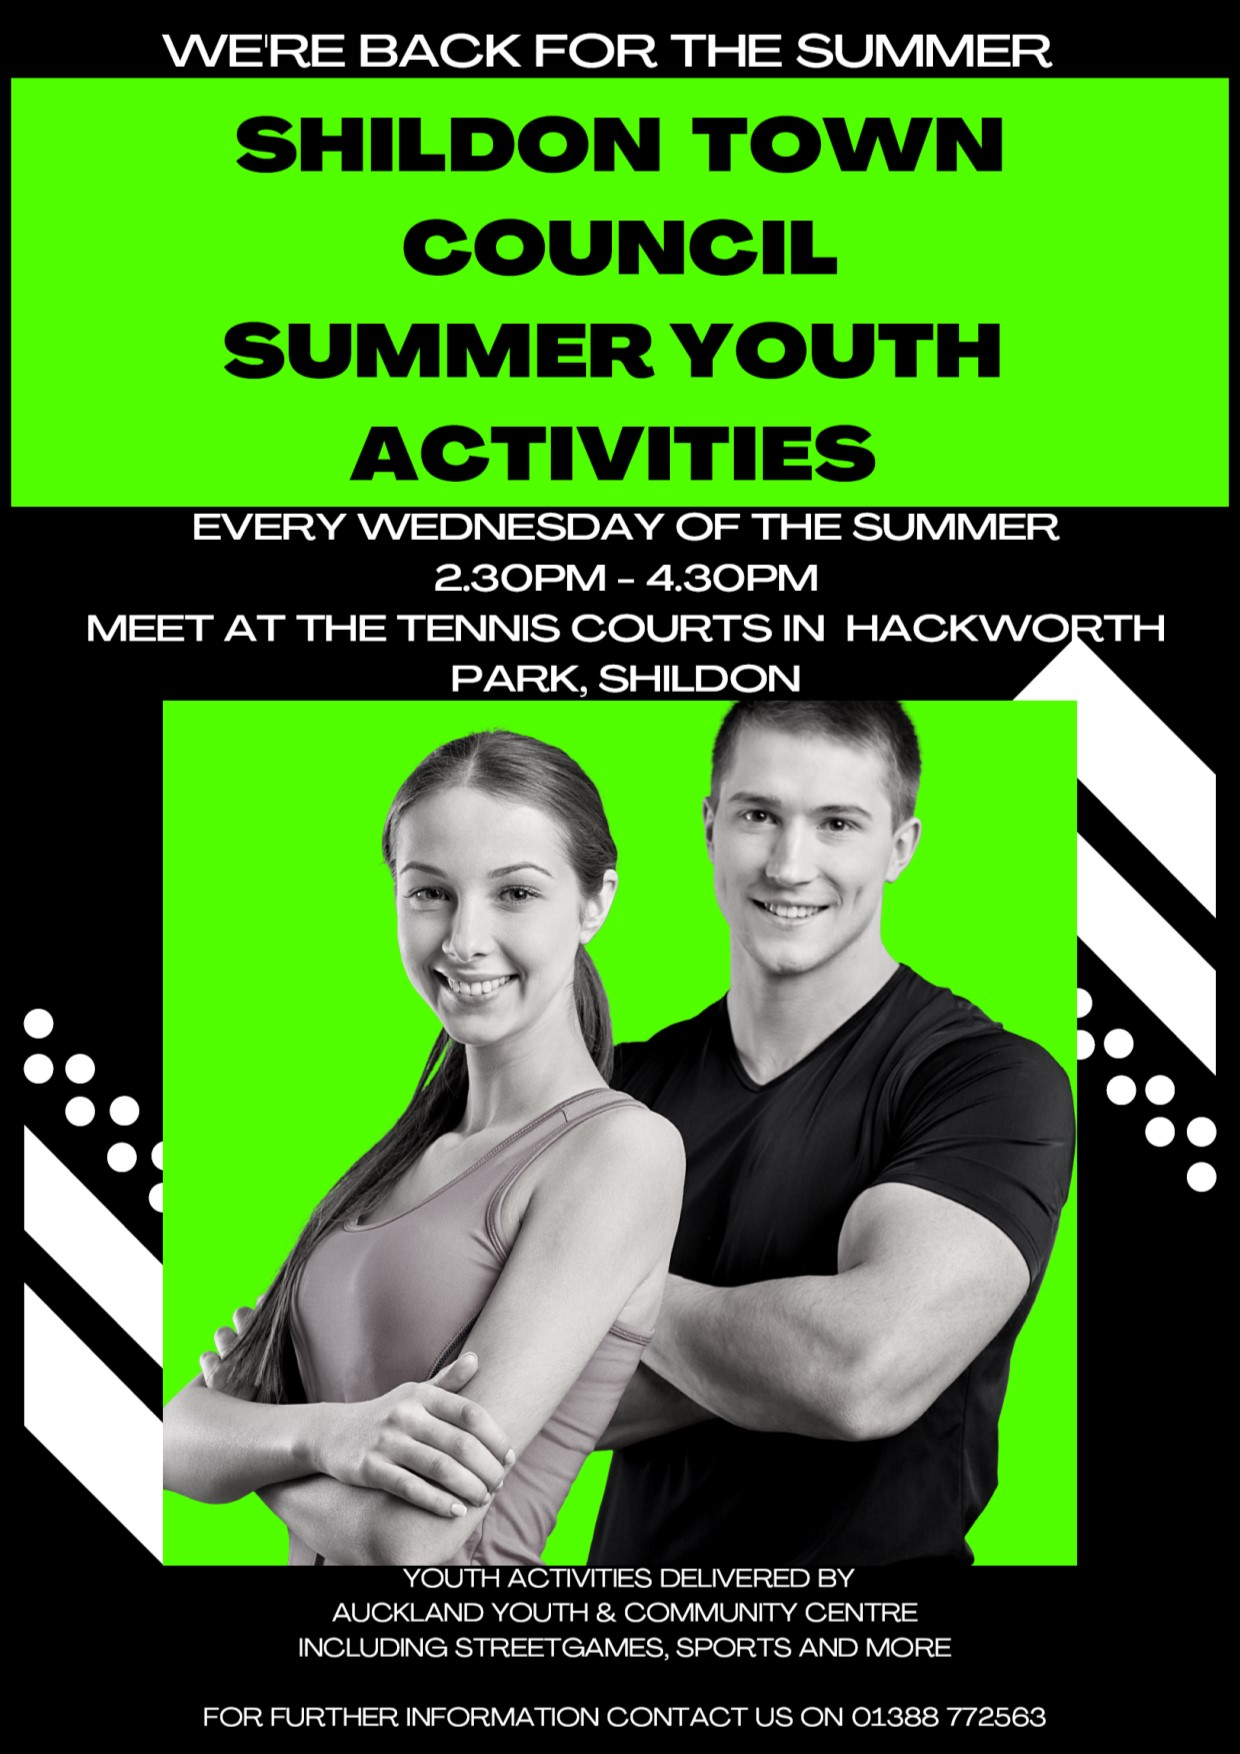 Image of poster for summer youth activities in Hackworth Park